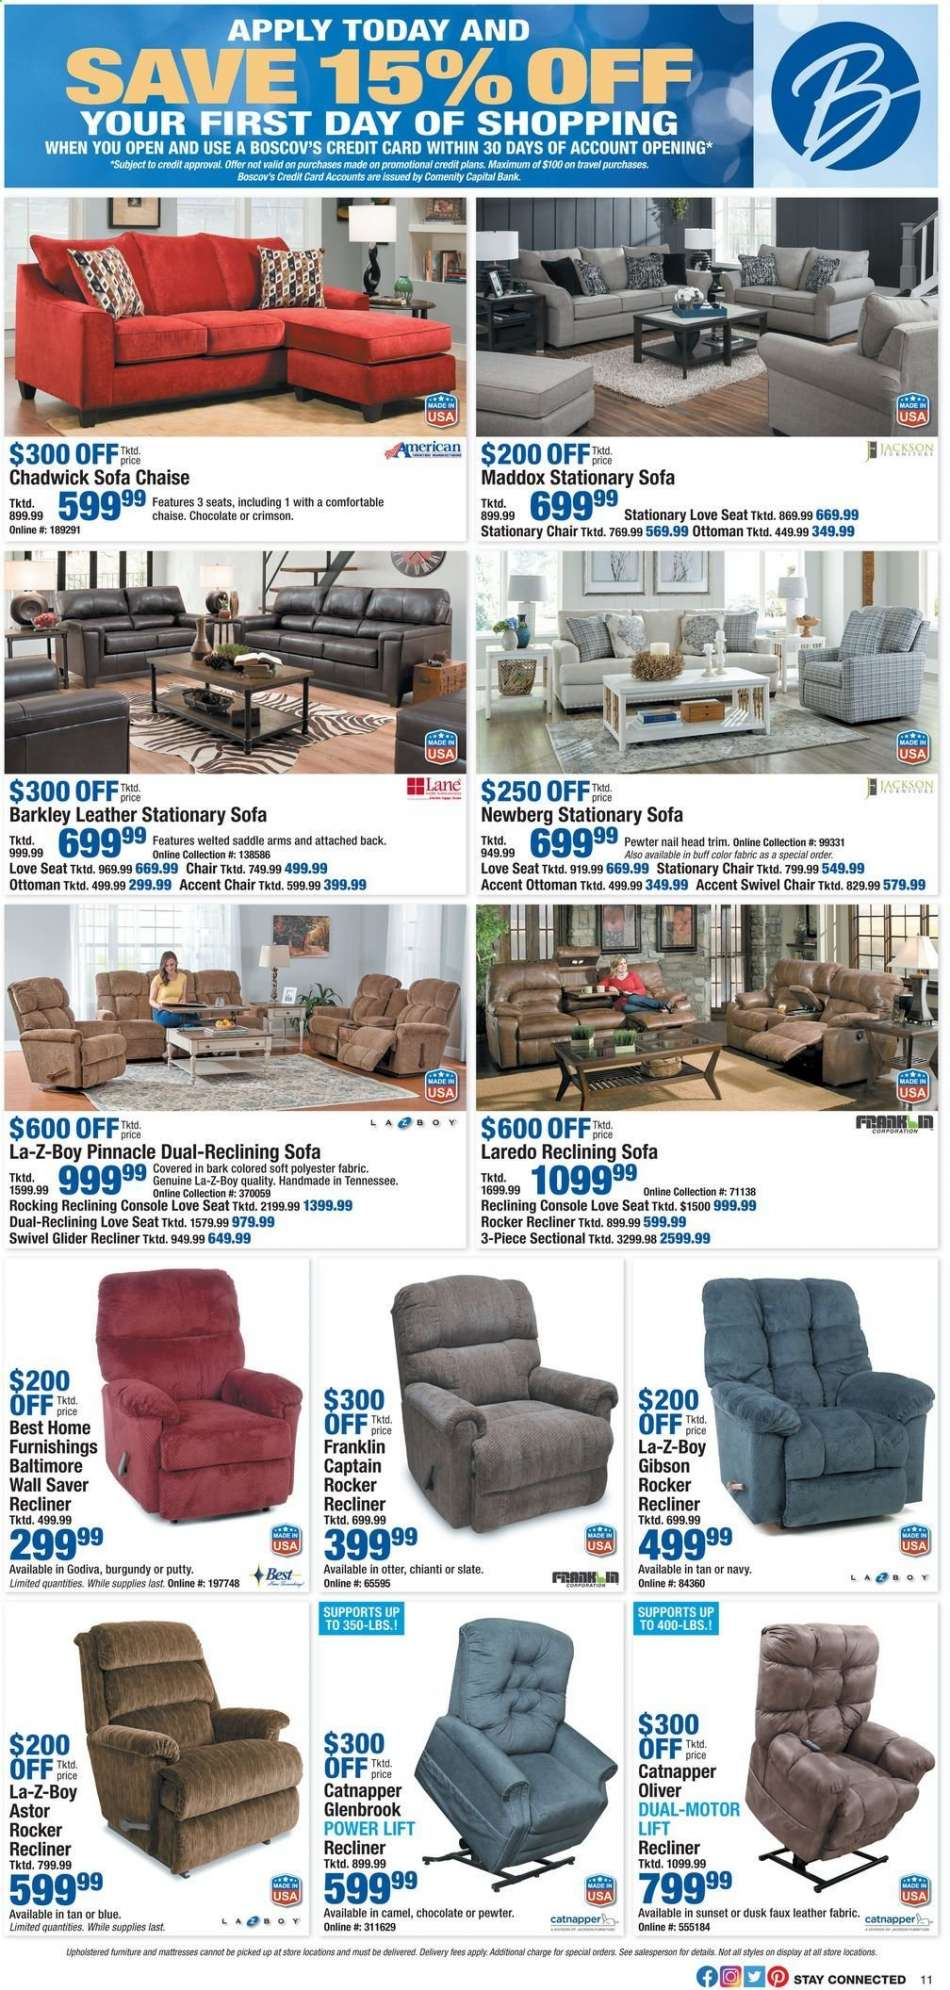 Wondrous Boscovs Flyer 10 24 2019 10 27 2019 Weekly Ads Us Gmtry Best Dining Table And Chair Ideas Images Gmtryco